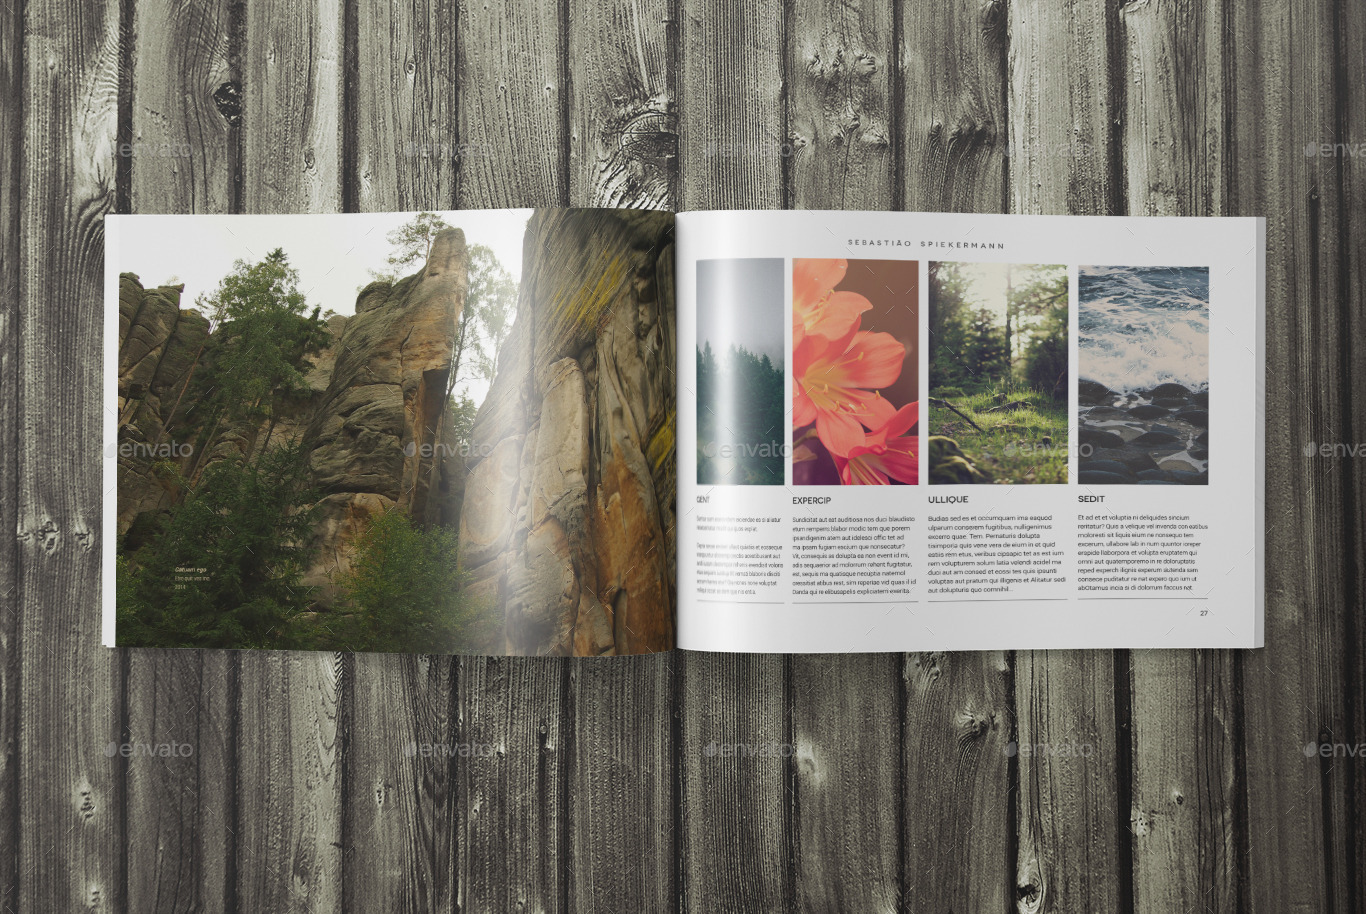 Adobe indesign photobook templates 5 Top Tips for Designing Good Photo Book Layouts